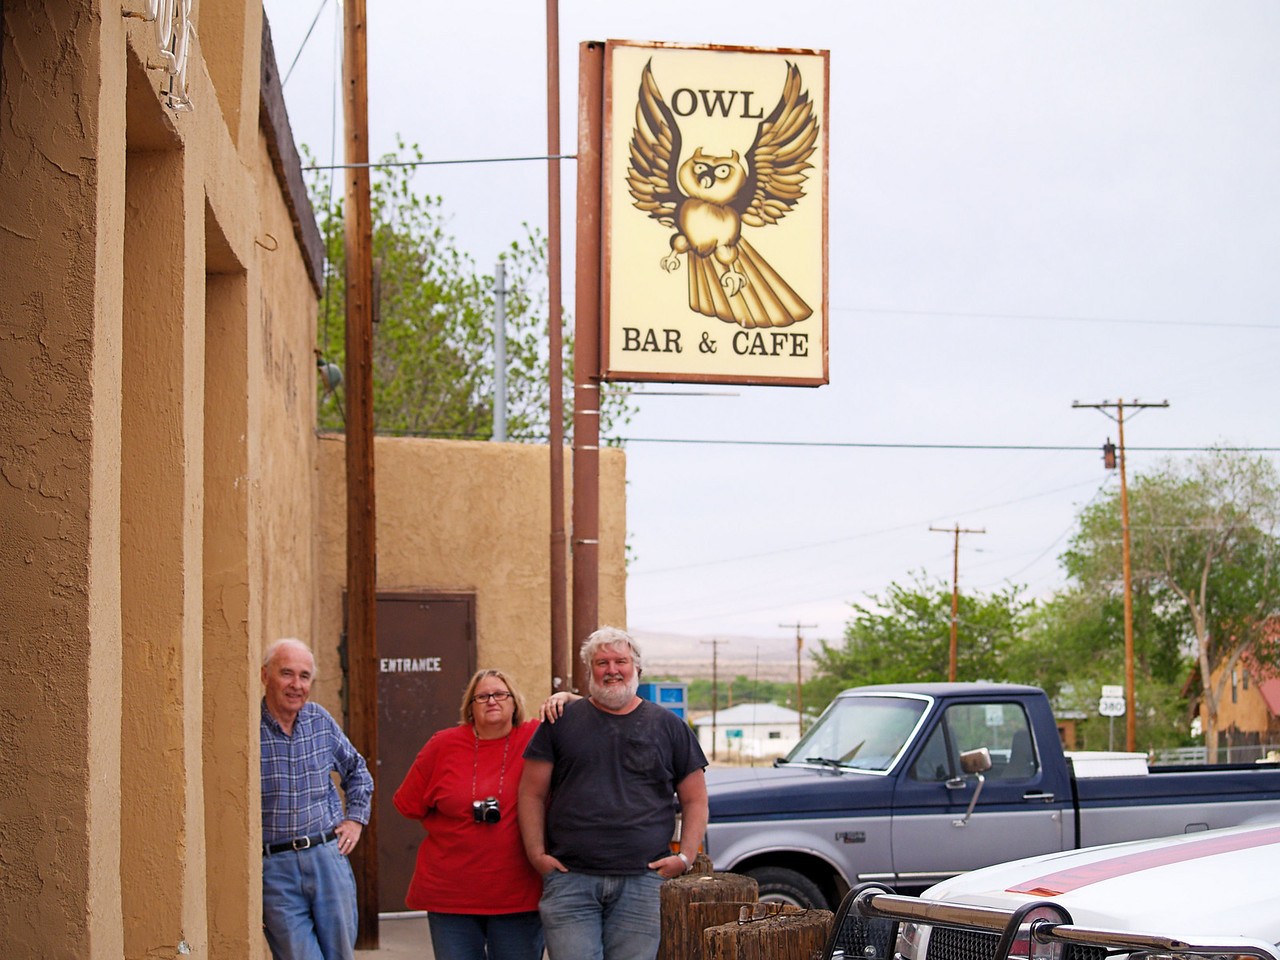 OLYMPUS DIGITAL CAMERA--Outside the historic Owl Bar in San Antonio, New Mexico.  Great green chile cheeseburgers.